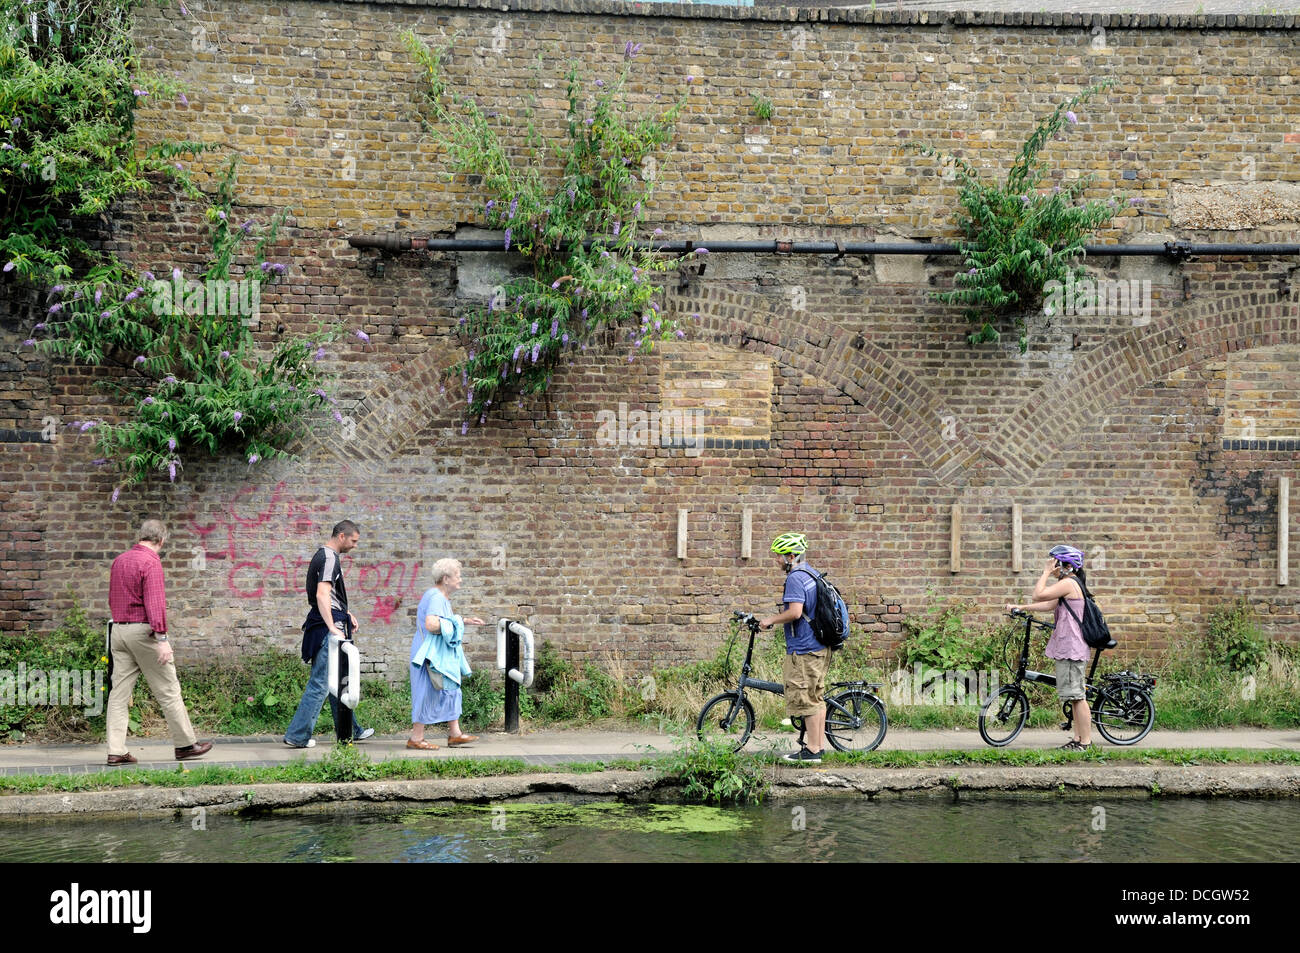 Leisure cyclists giving way to pedestrians or walkers on the Regent's Canal towpath, London Borough of Camden, - Stock Image